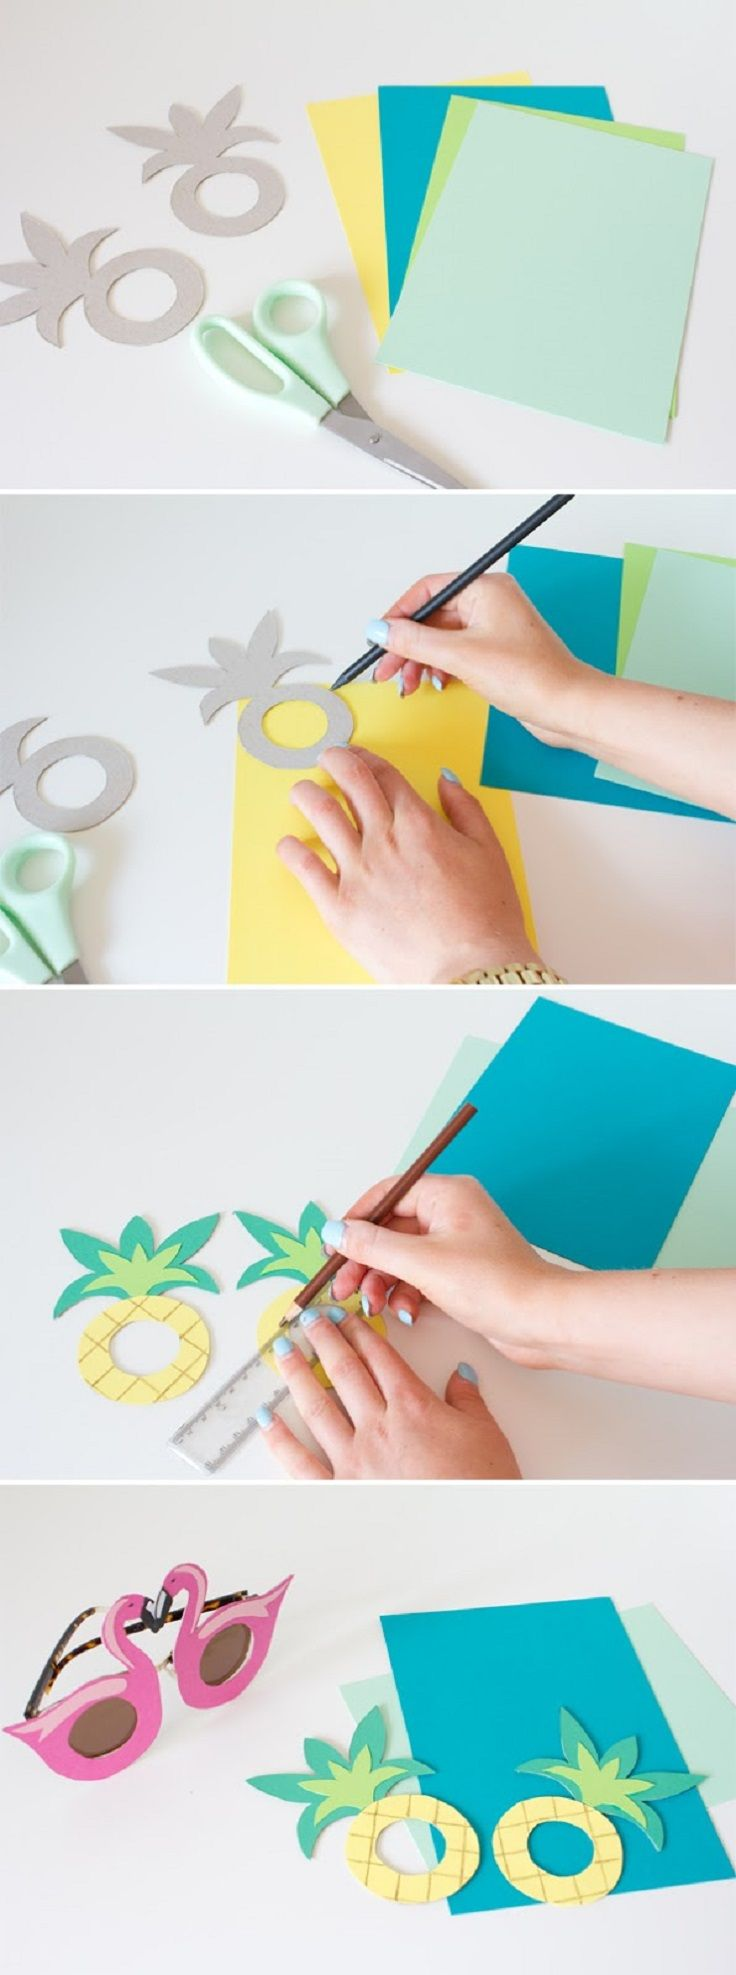 DIY Pineapple and Flamingo Sunglasses #diy #crafts